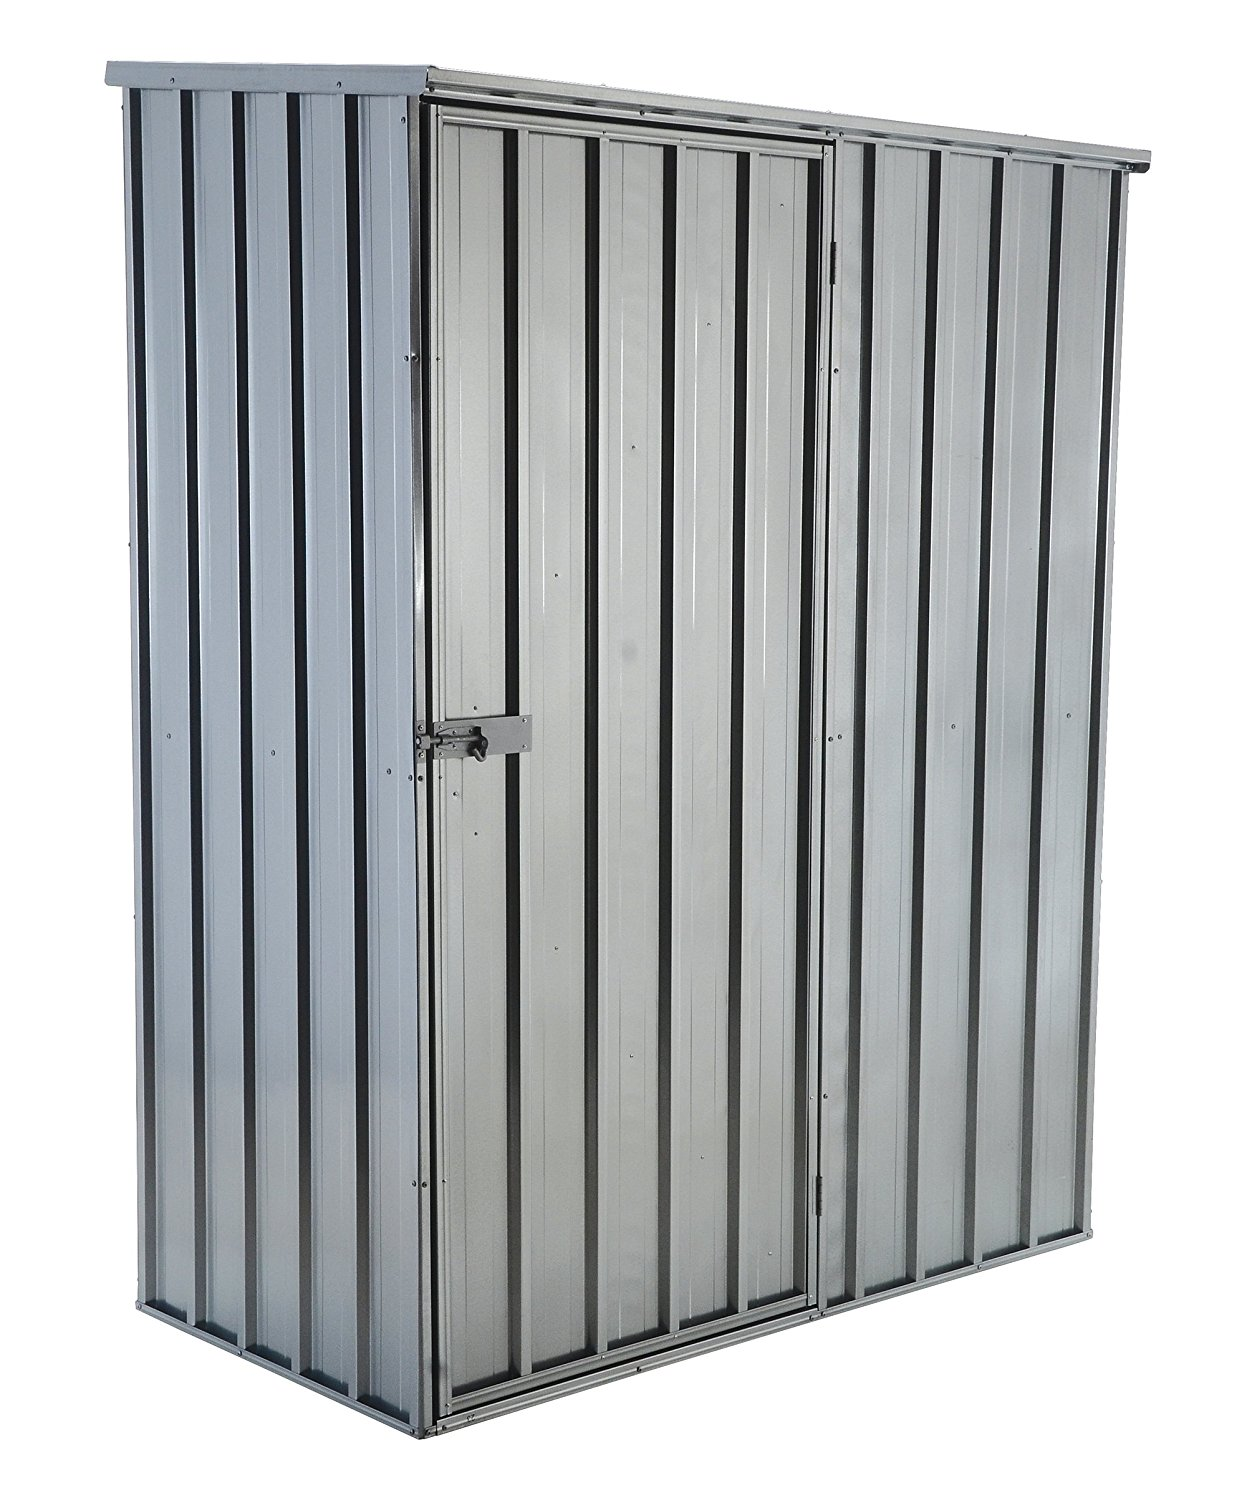 Vestil Steel Storage Shed with Flat Roof